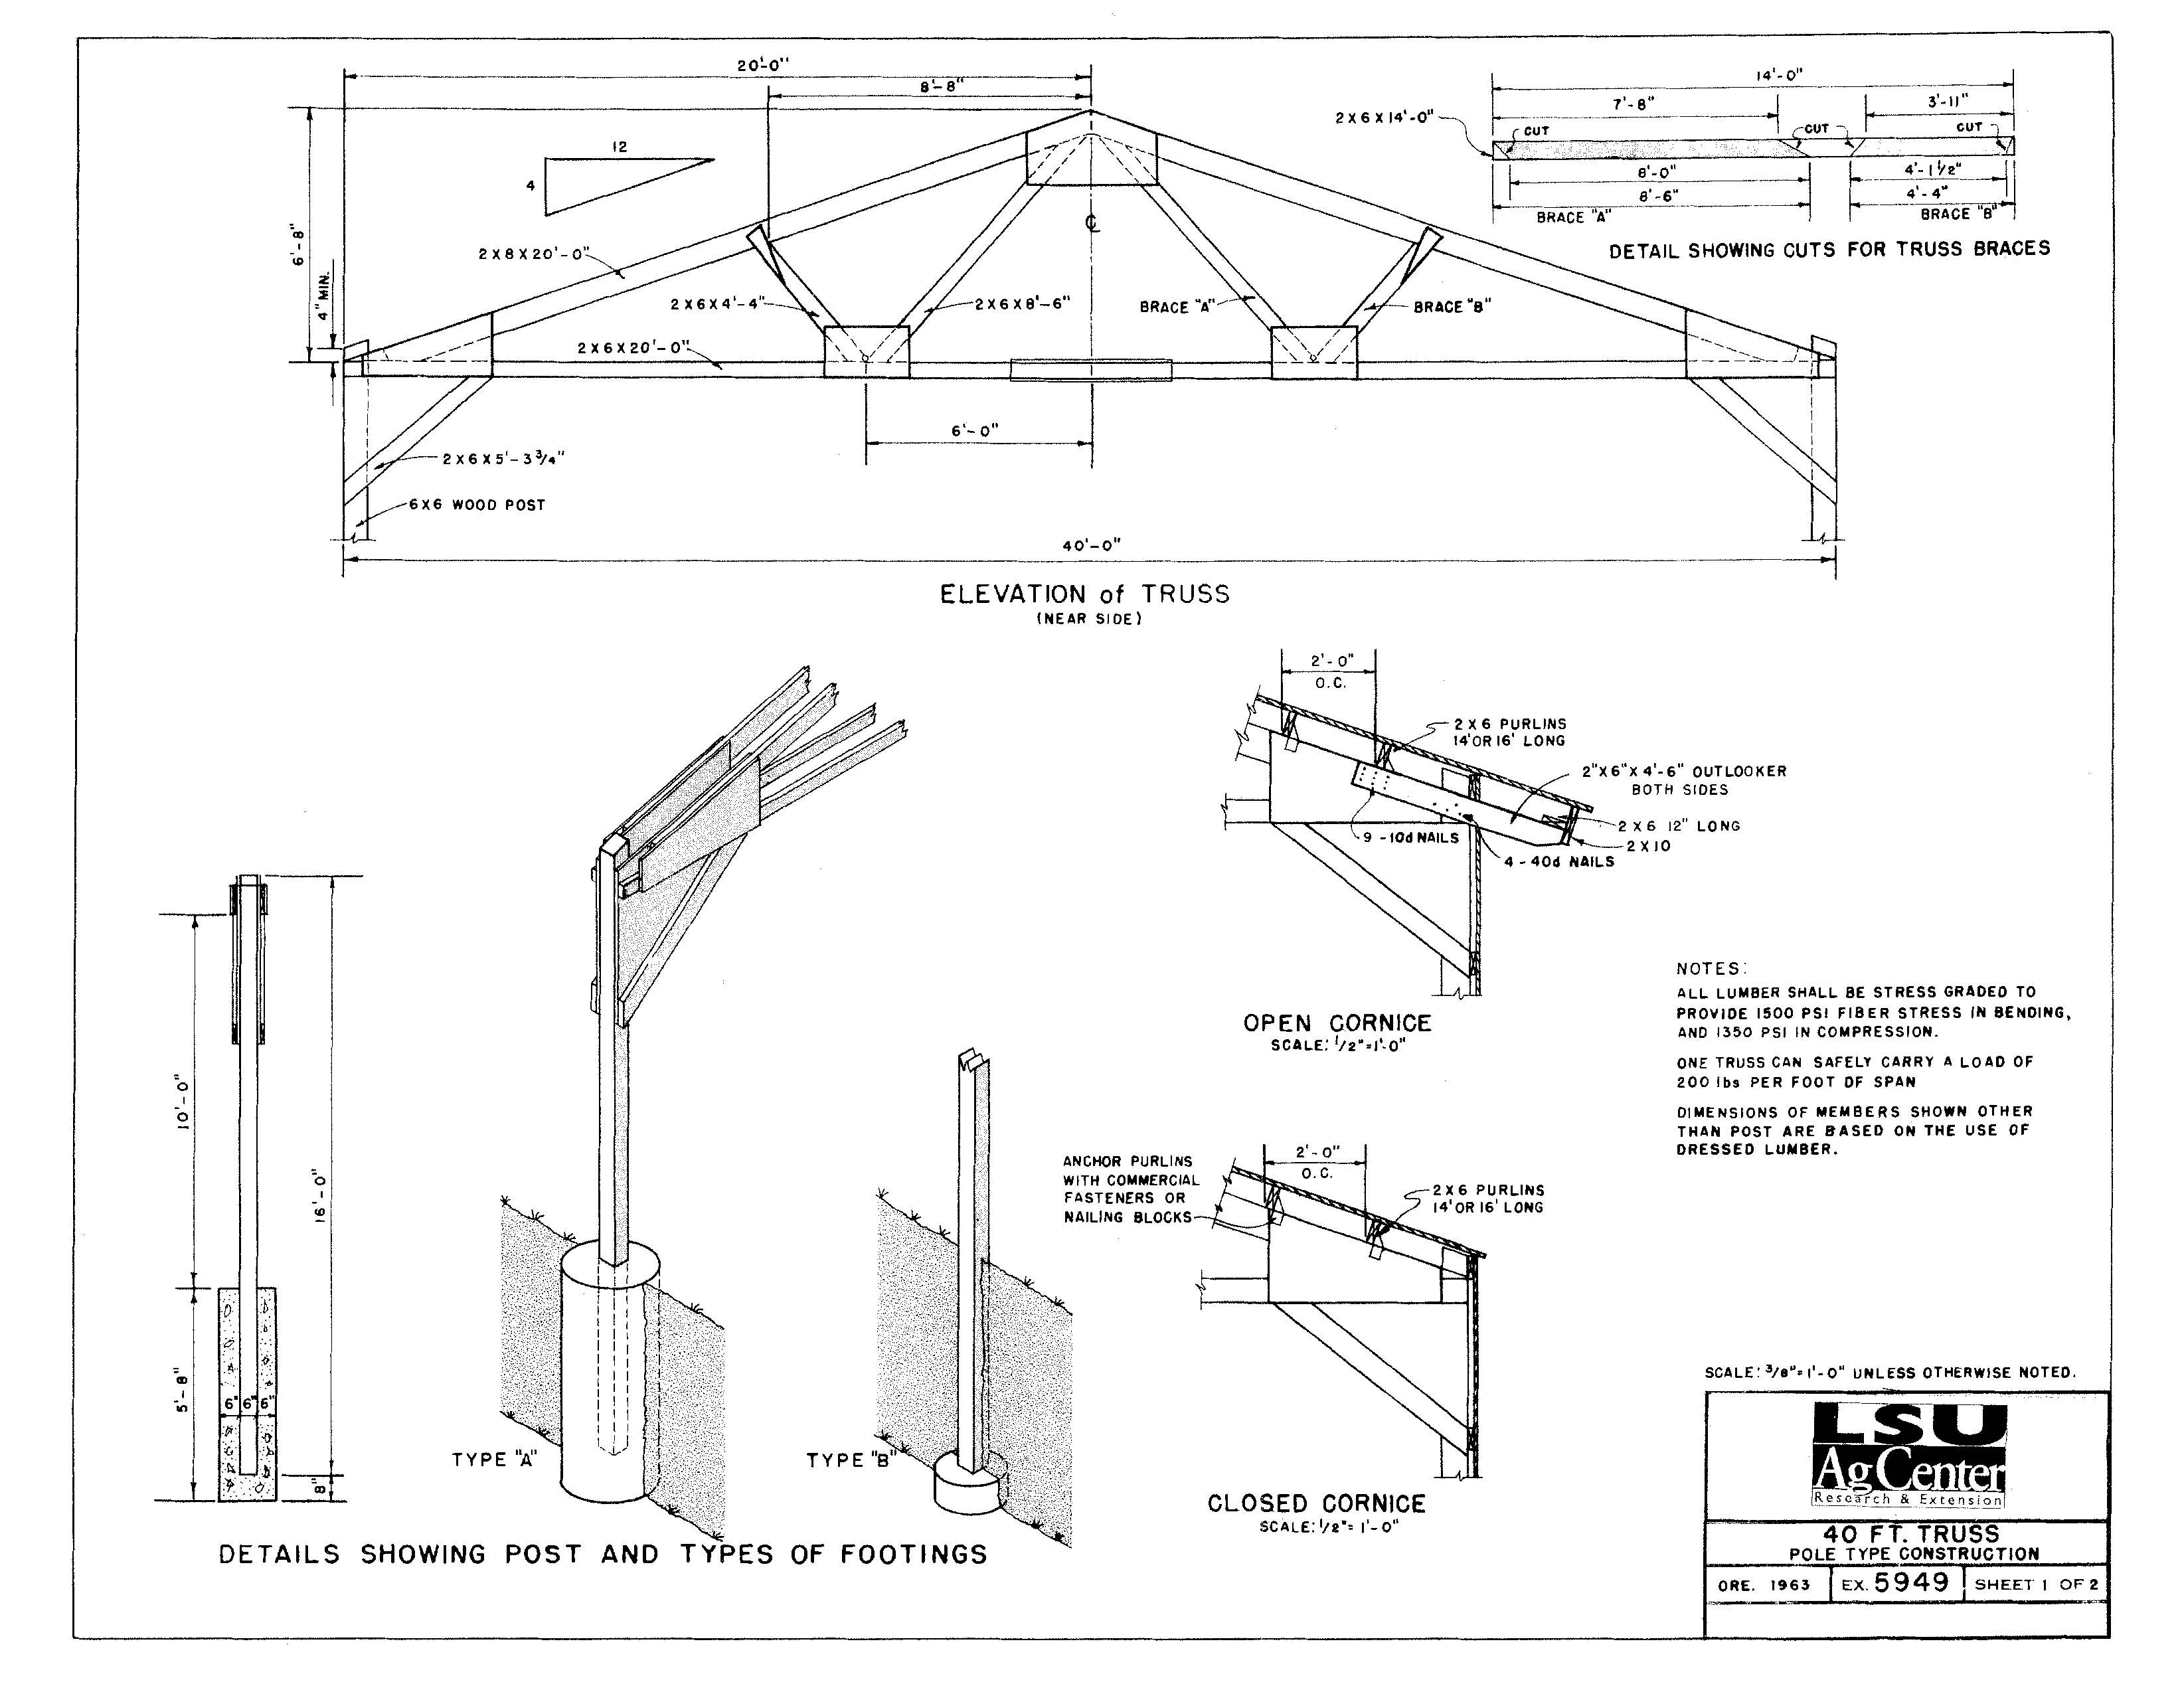 40 ft. Steel Pipe Truss (4.12 Pitch)